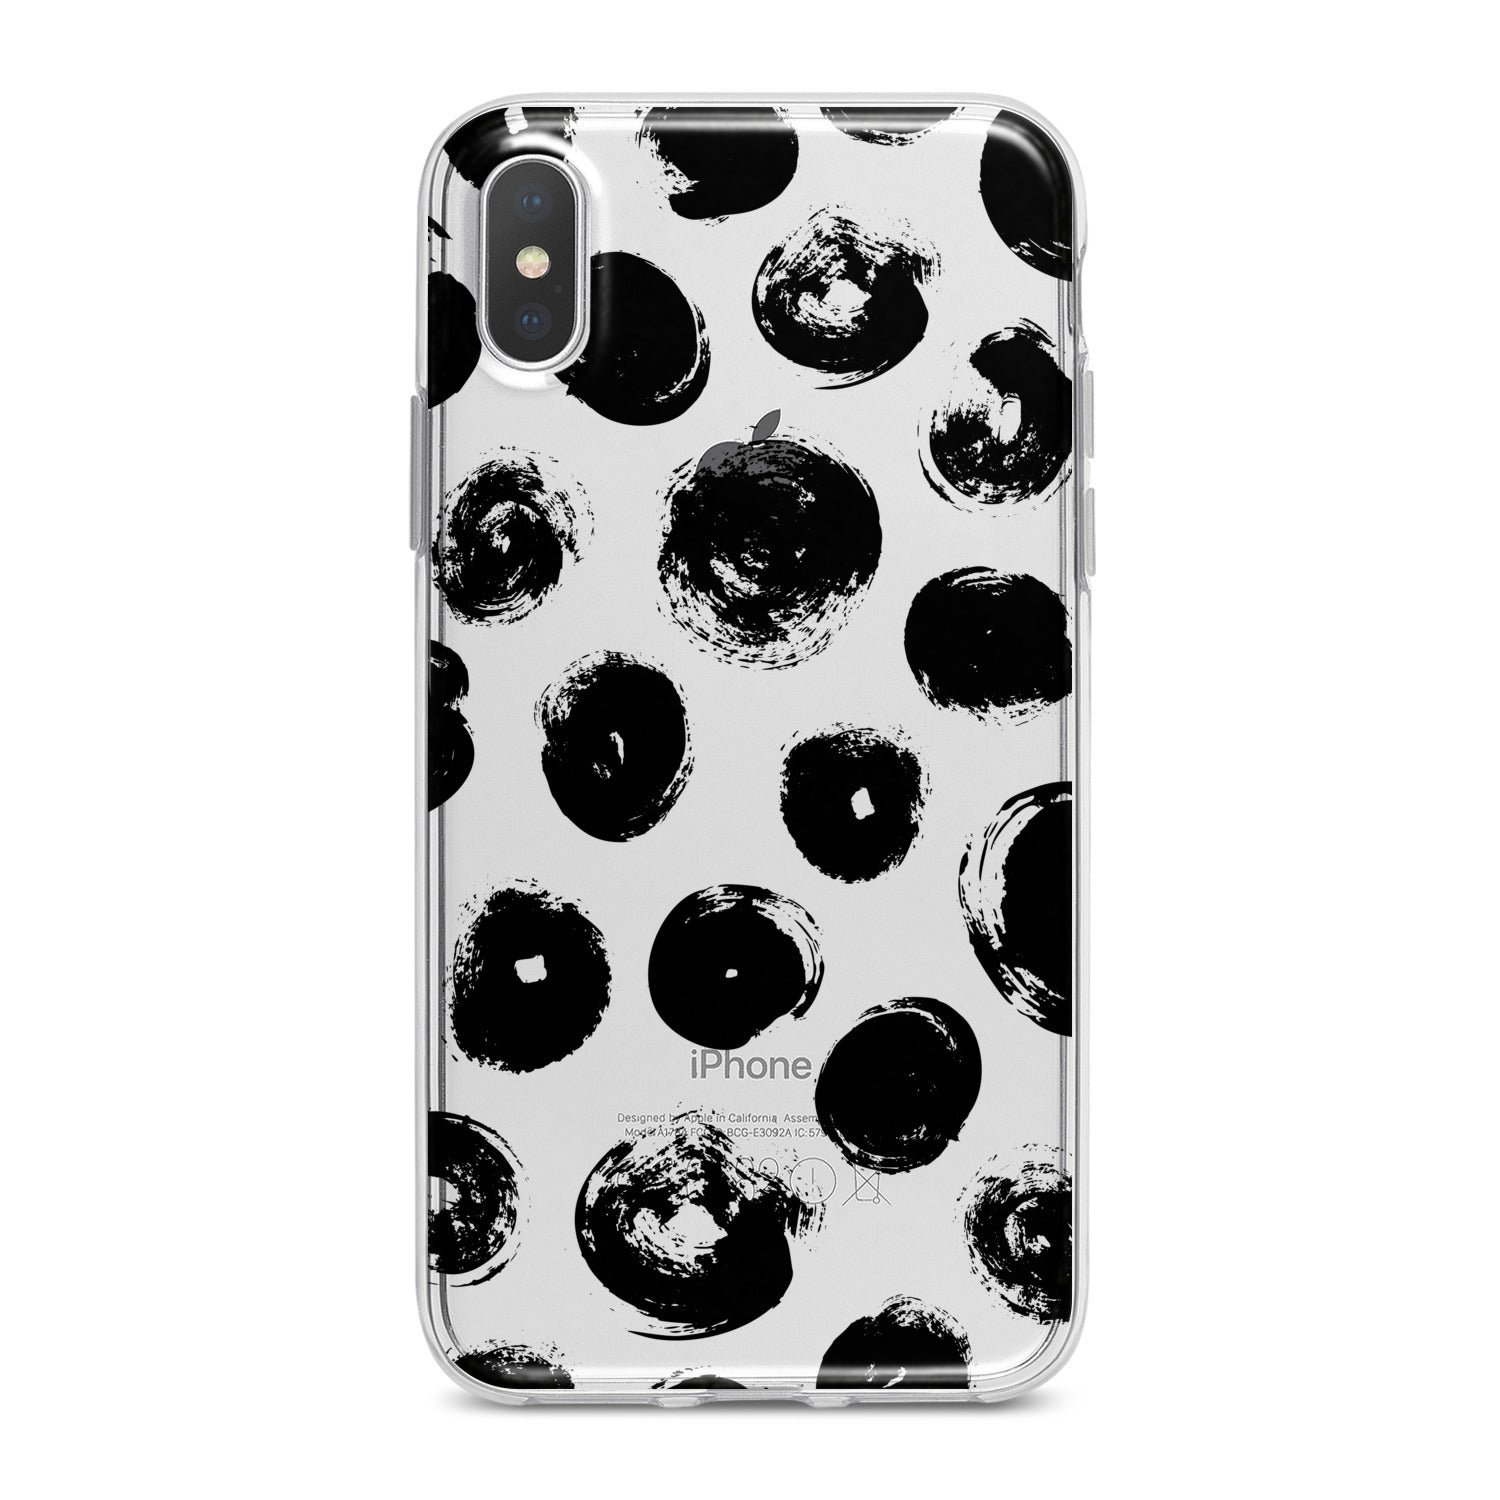 Lex Altern Black Artwork Phone Case for your iPhone & Android phone.